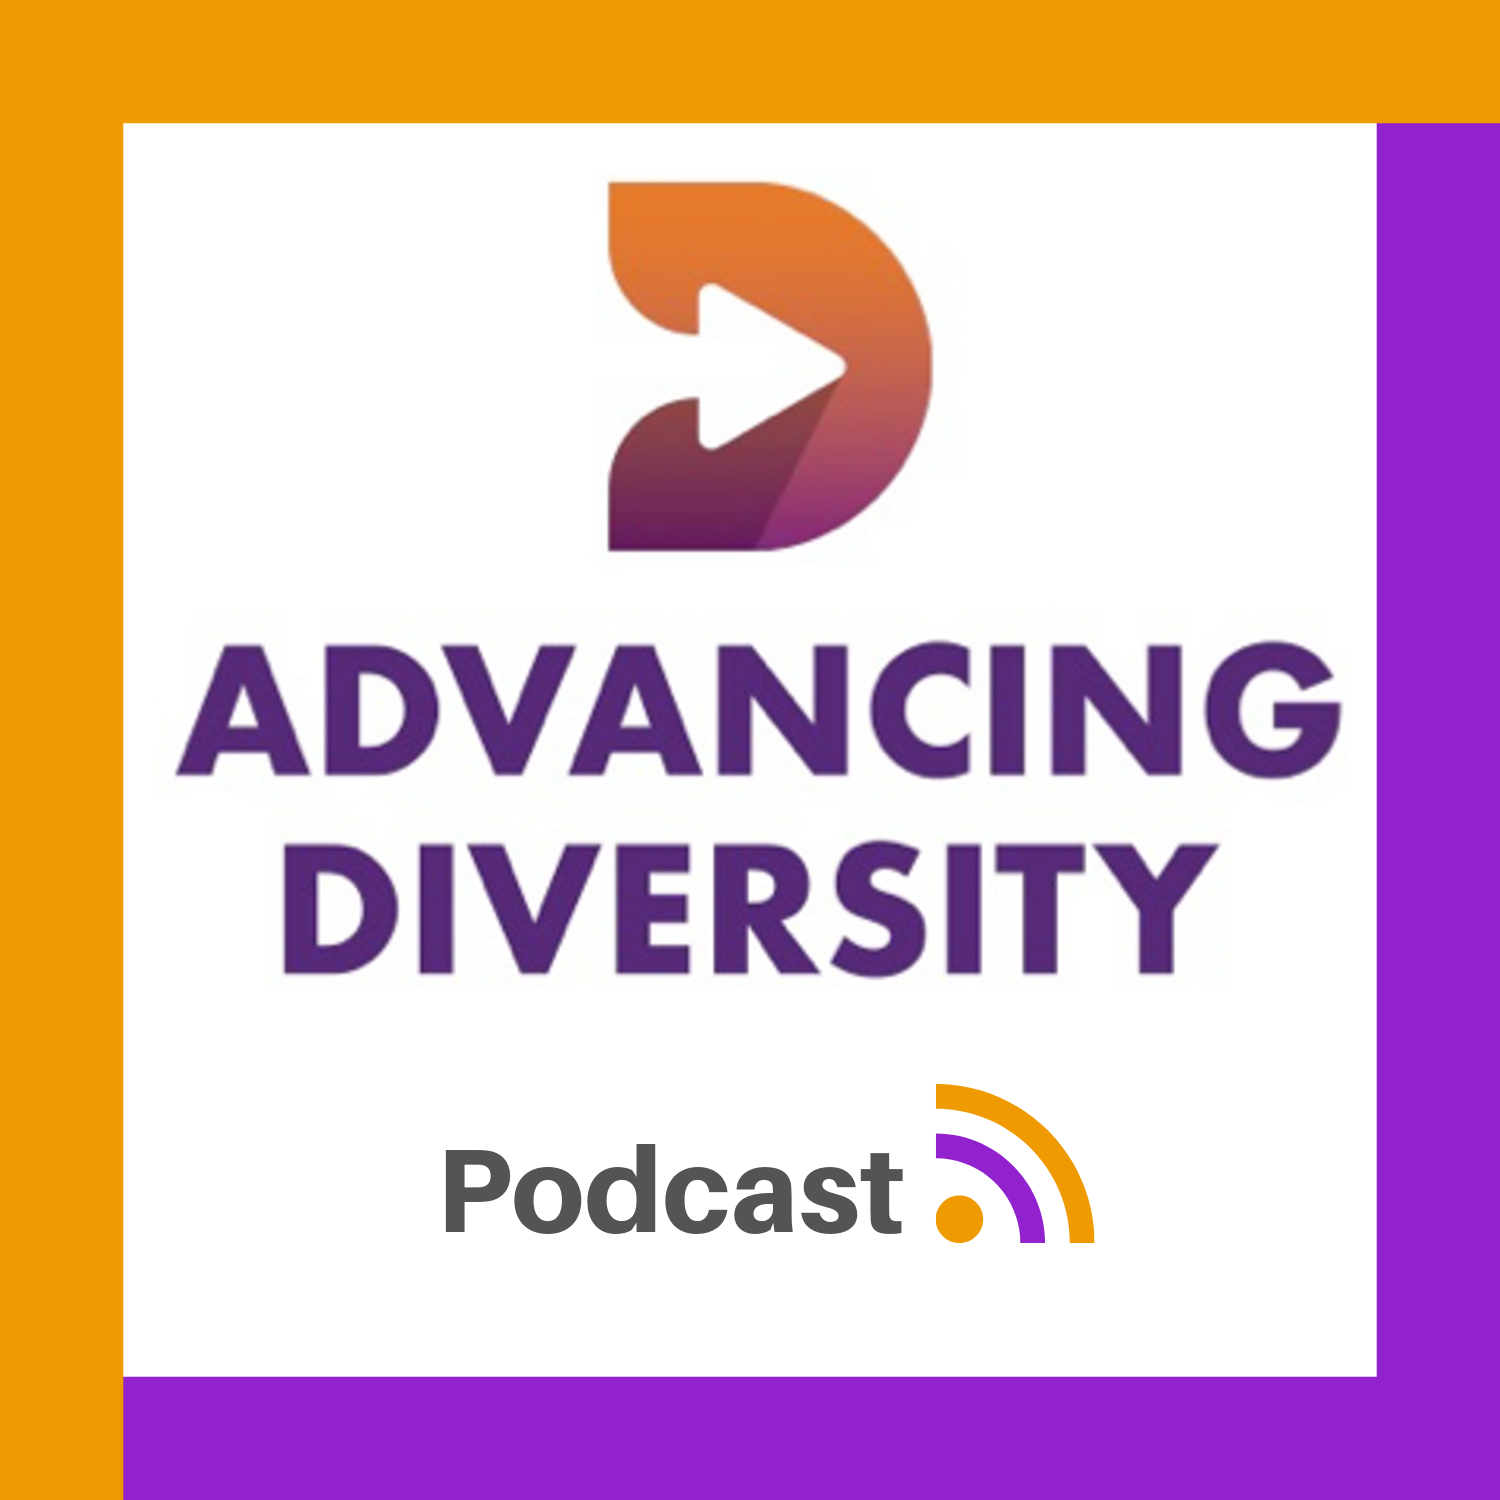 Advancing Diversity Podcast from MediaVillage show image